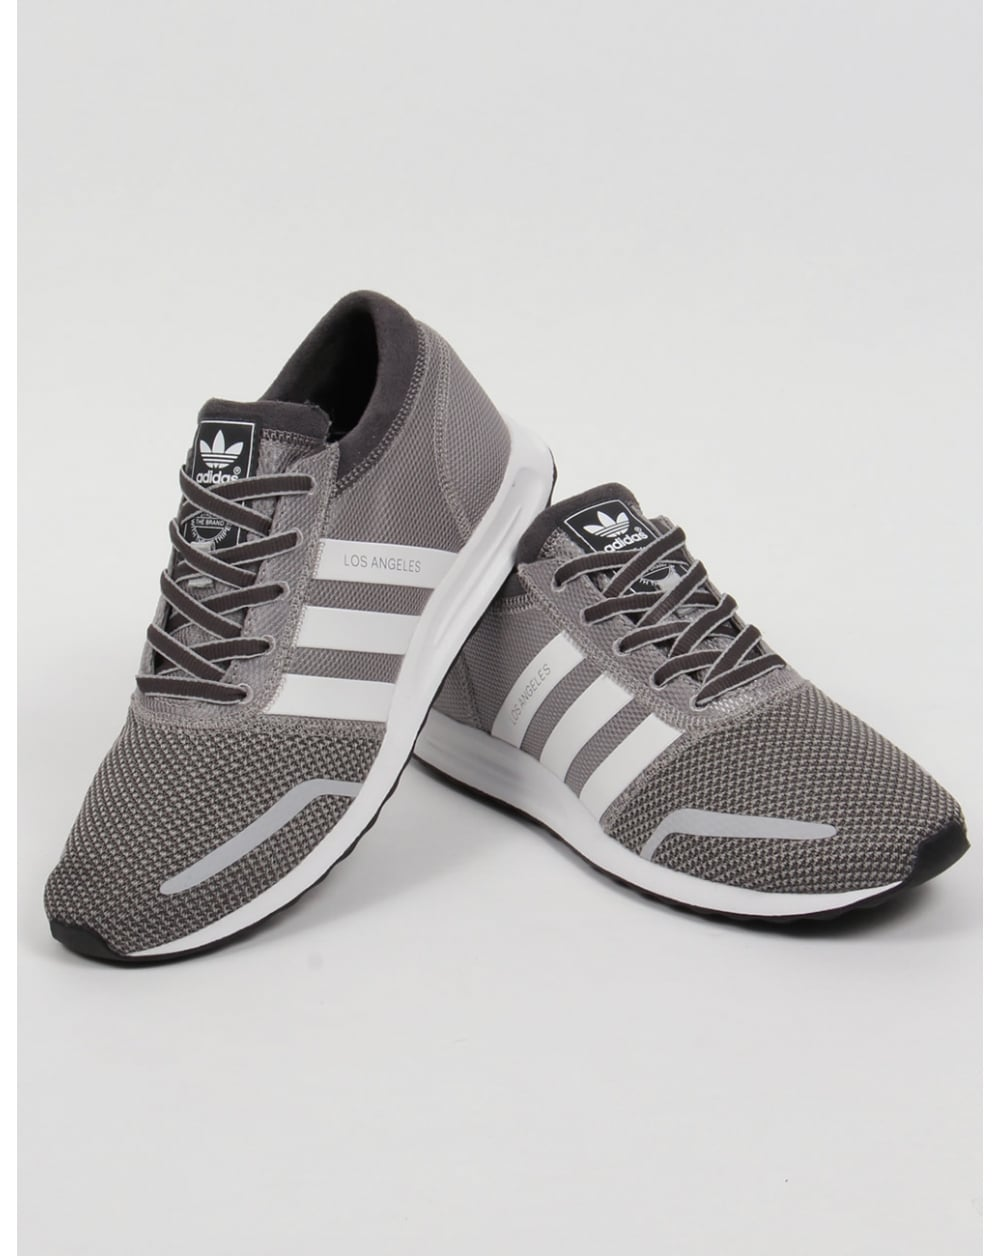 Adidas Shoes Company In India